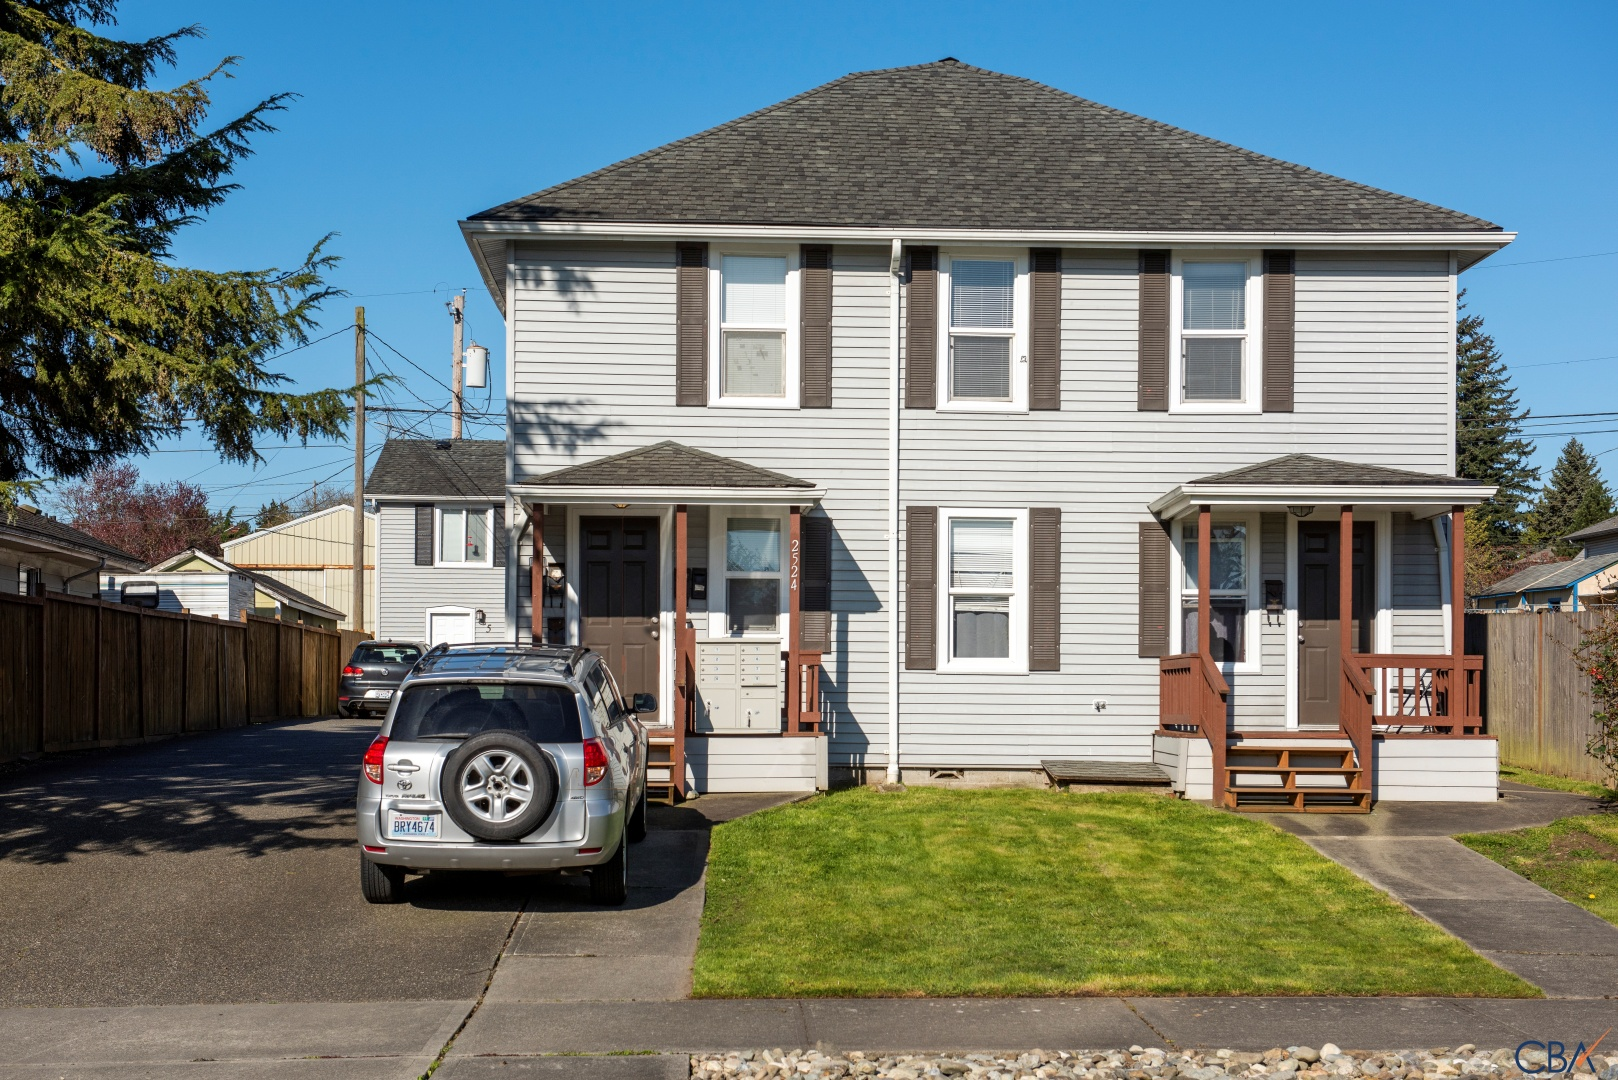 Primary Listing Image for MLS#: 638857